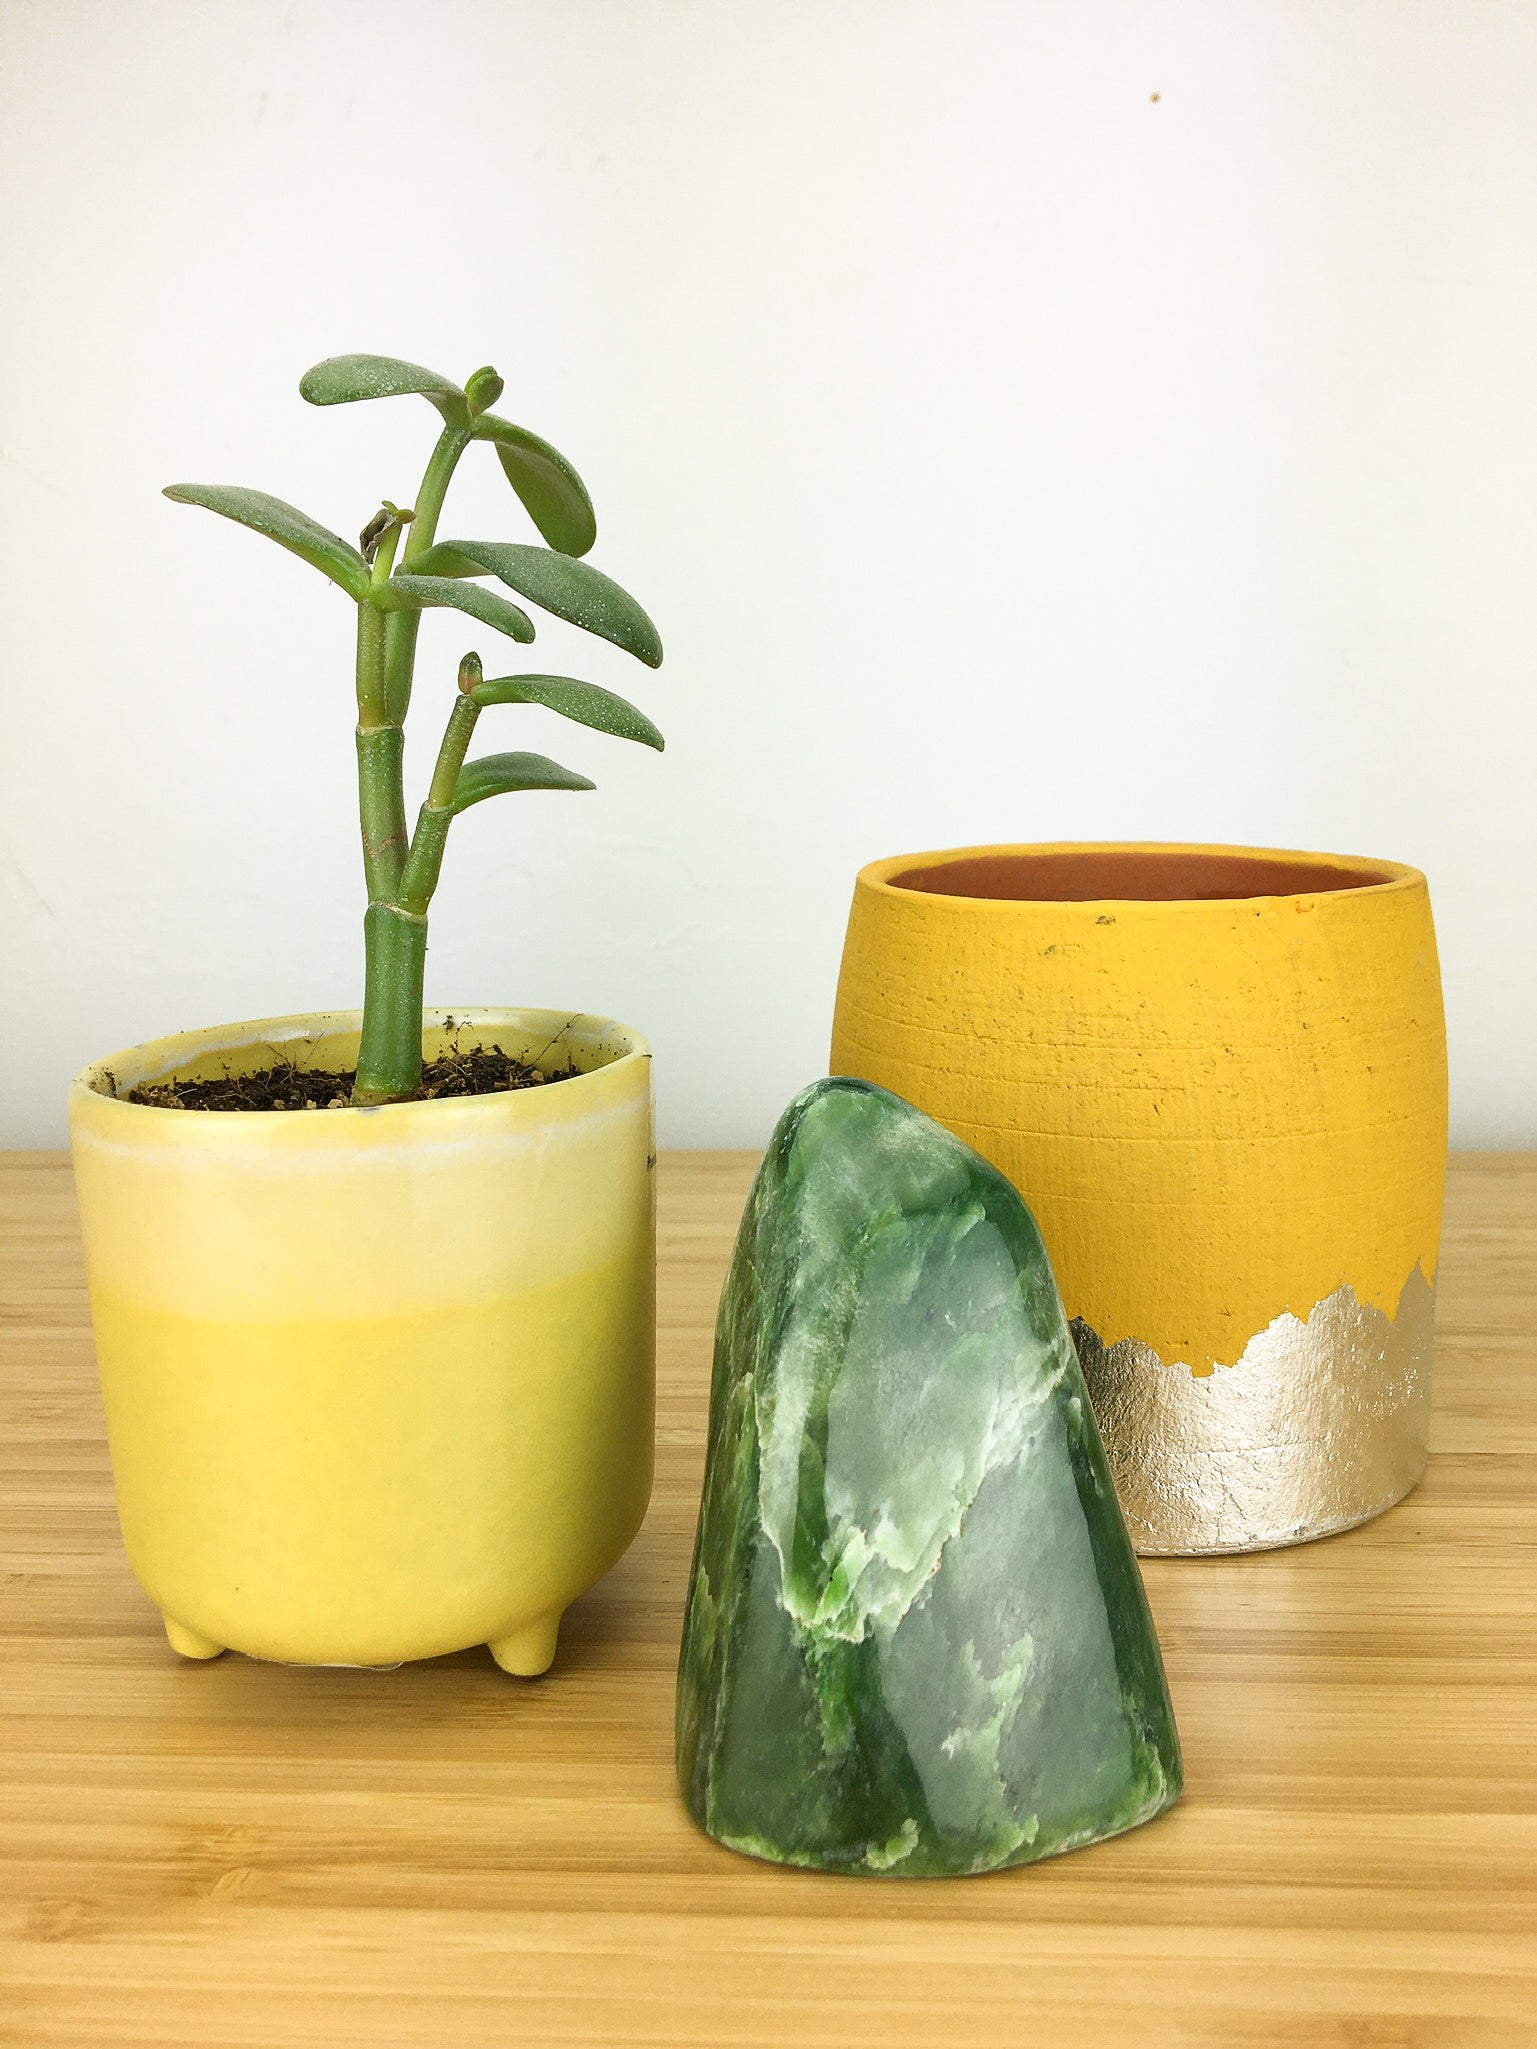 A nephrite jade freeform which is displayed next to a pot plant for scale